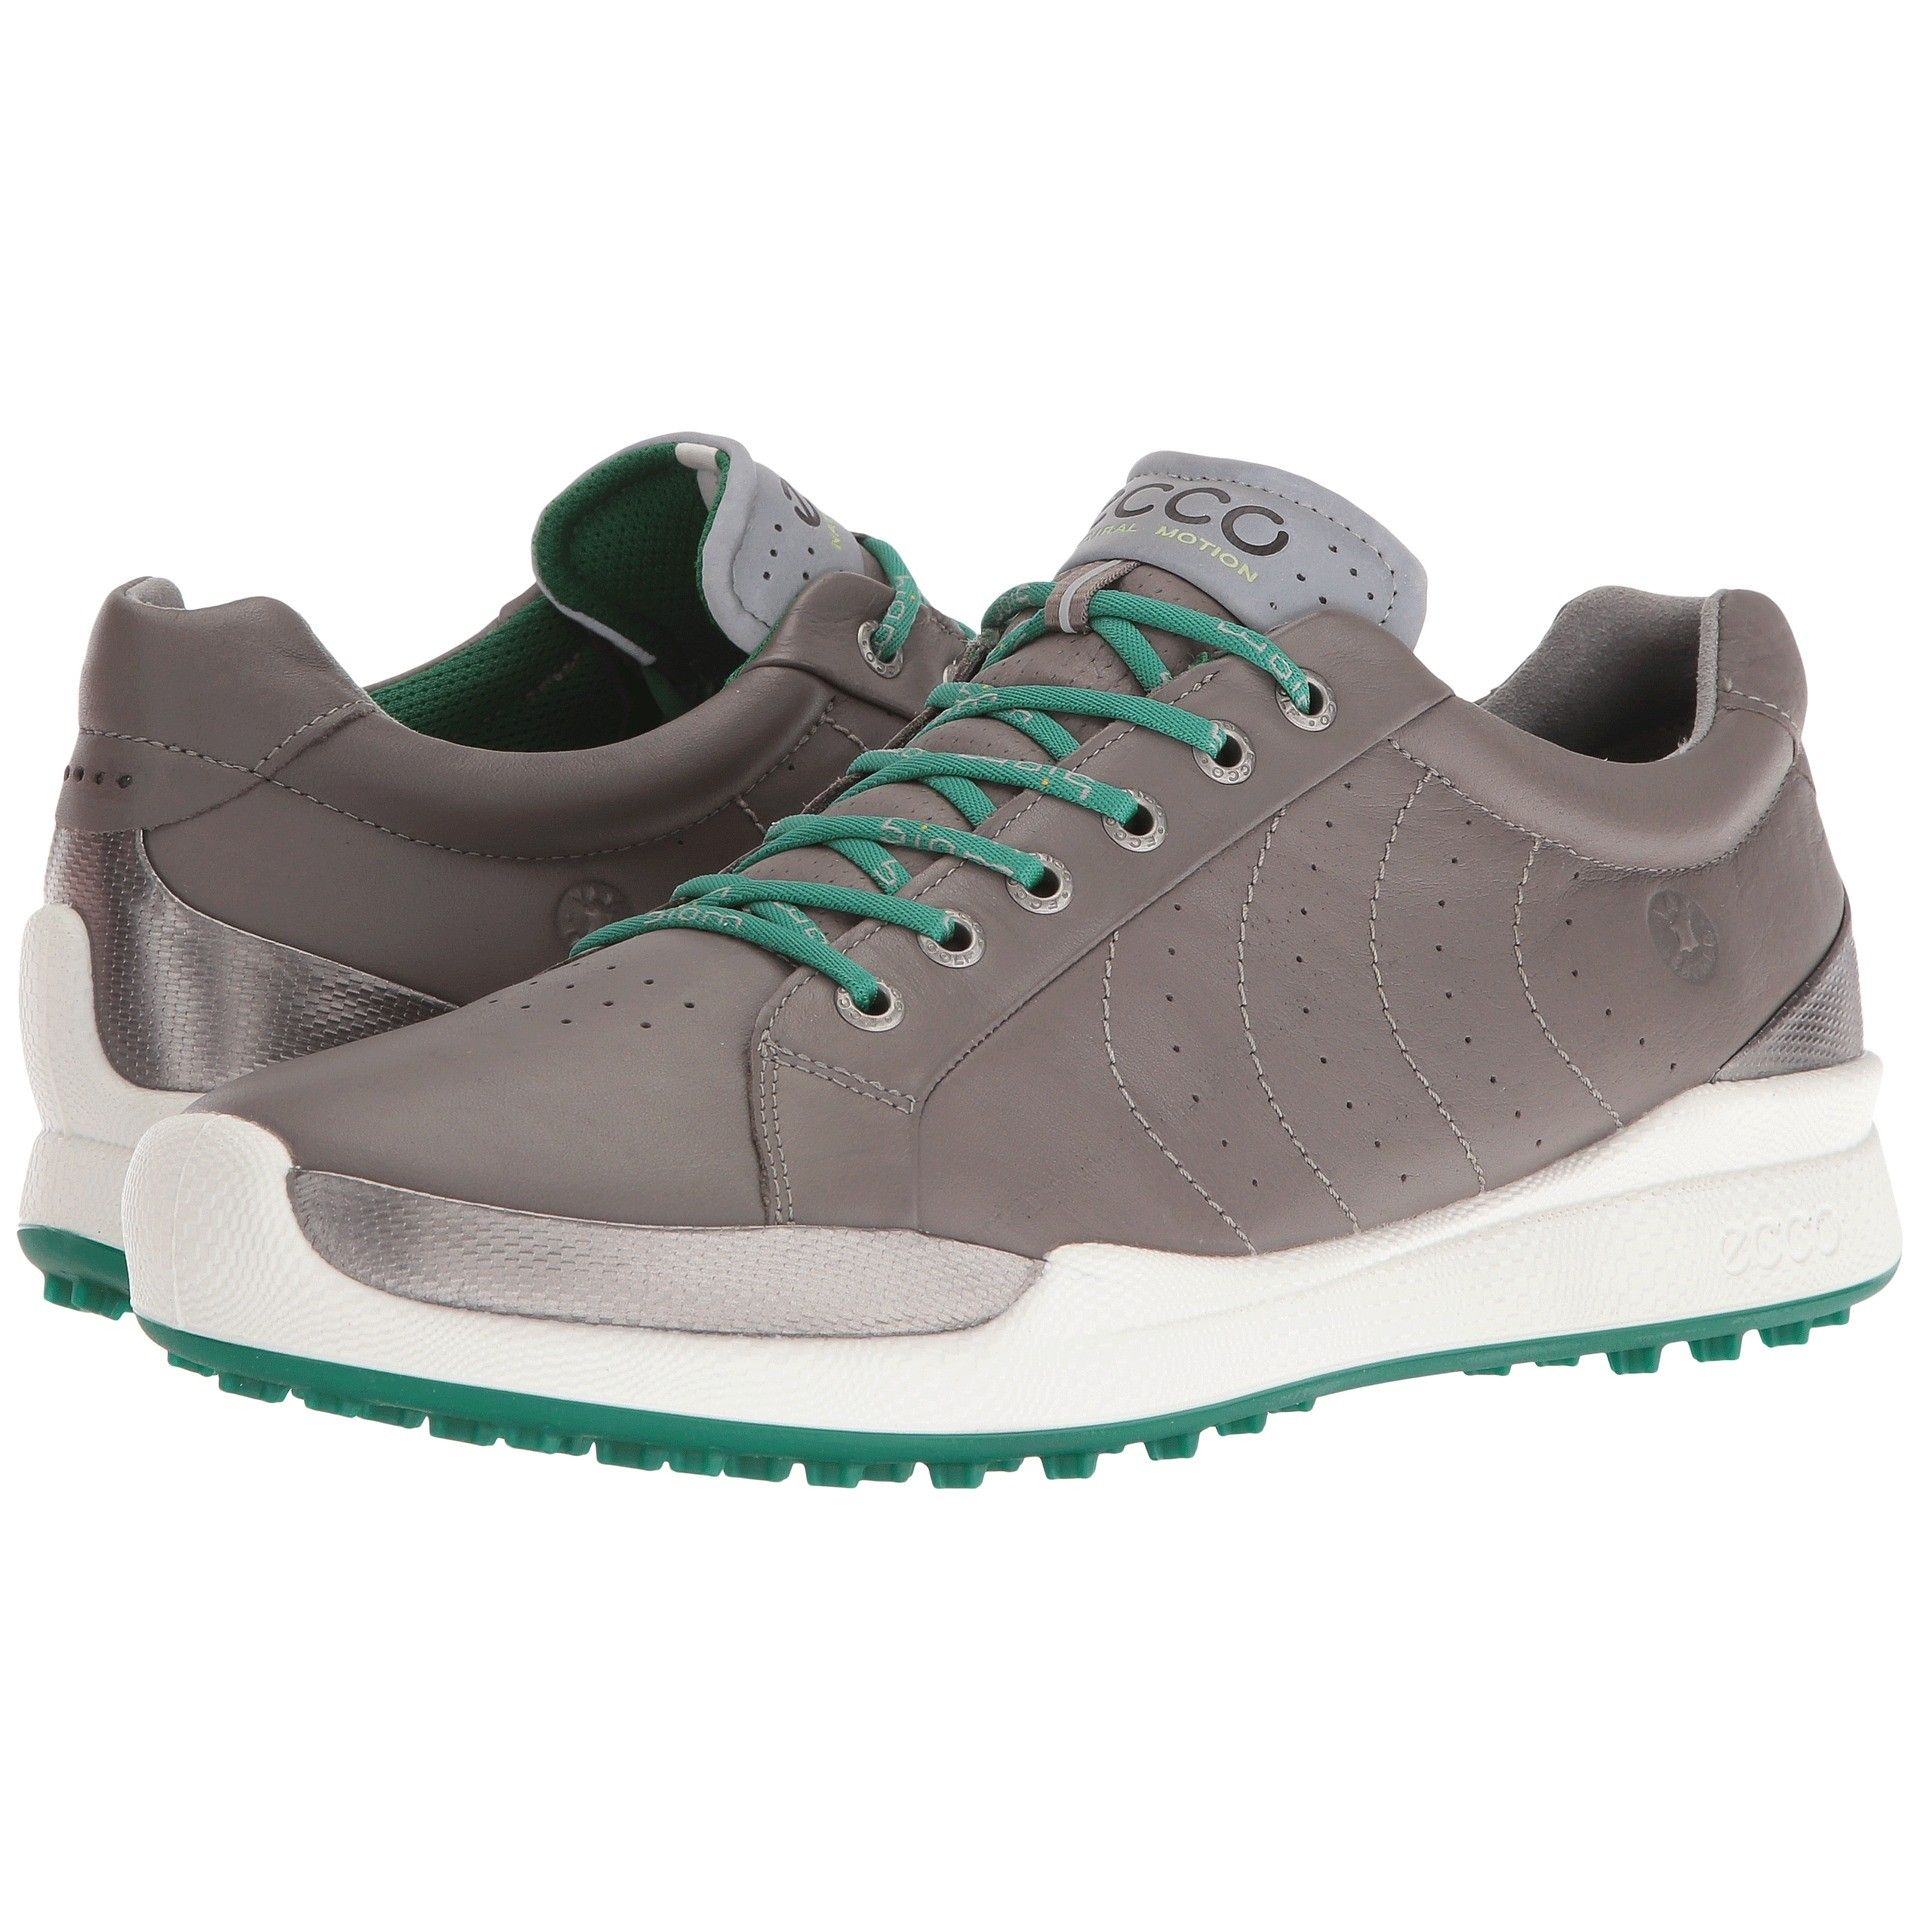 Ecco Biom Hybrid Hydromax Golf Shoe - Grey Pure Green  49462cfa22